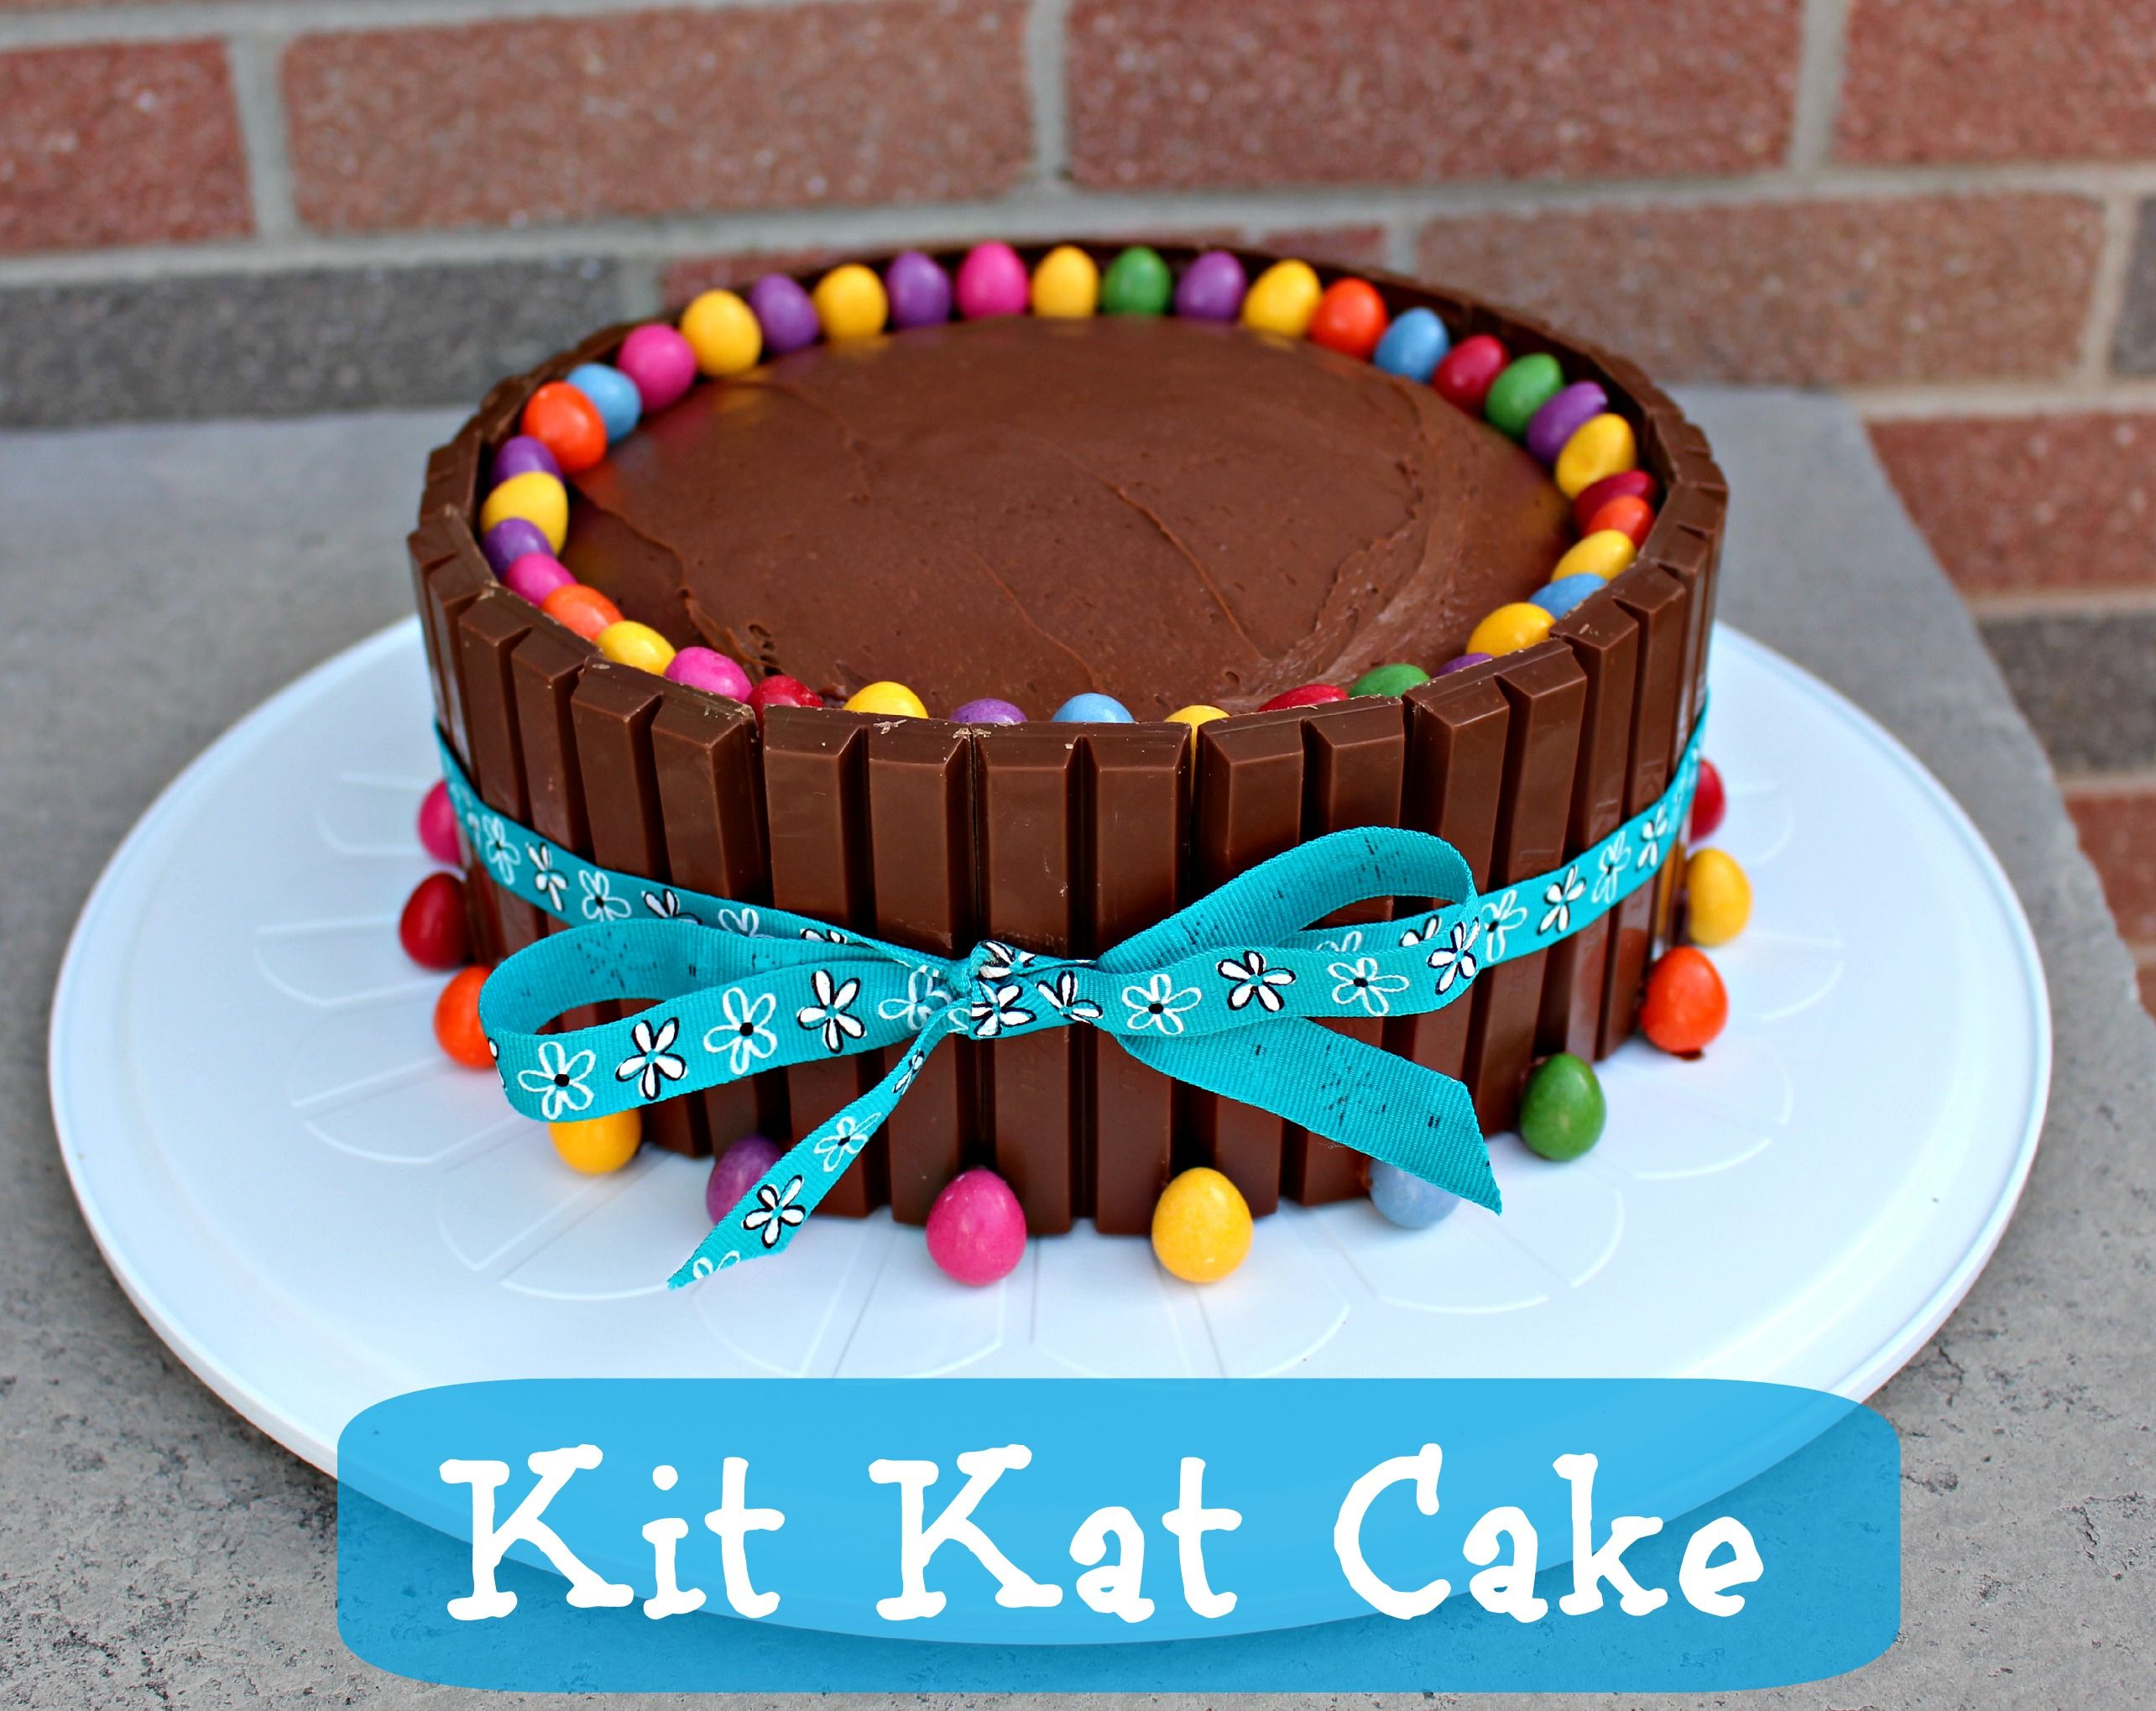 Kit Kat Cake Recipe With Images Kit Kat Cake Easy Birthday